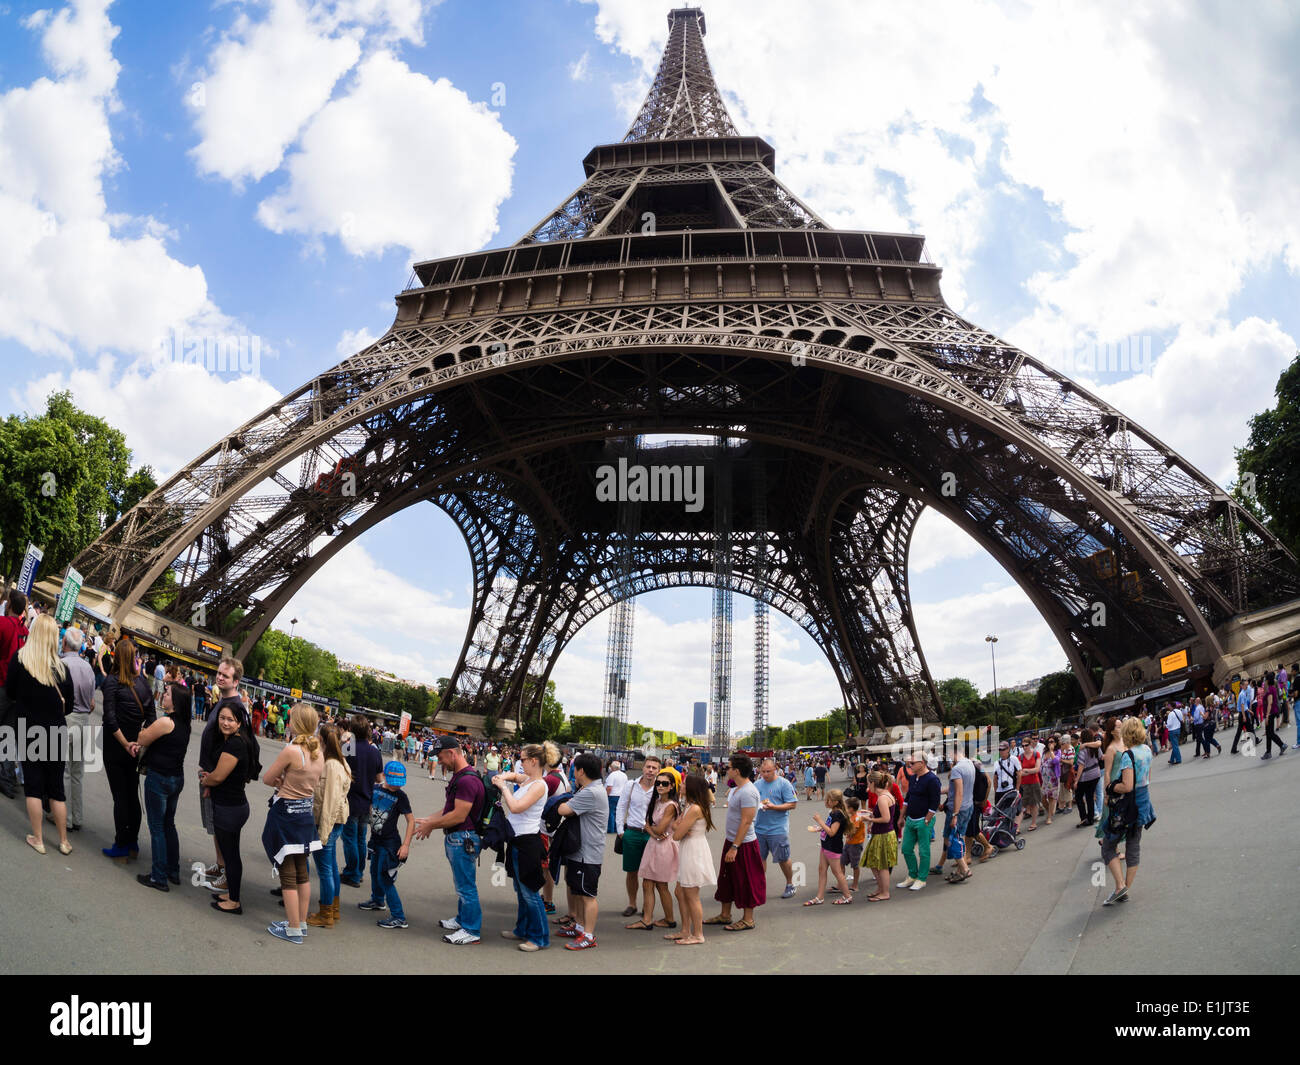 Tourists stand in a long line for the elevators at the Paris Eiffel Tower. - Stock Image